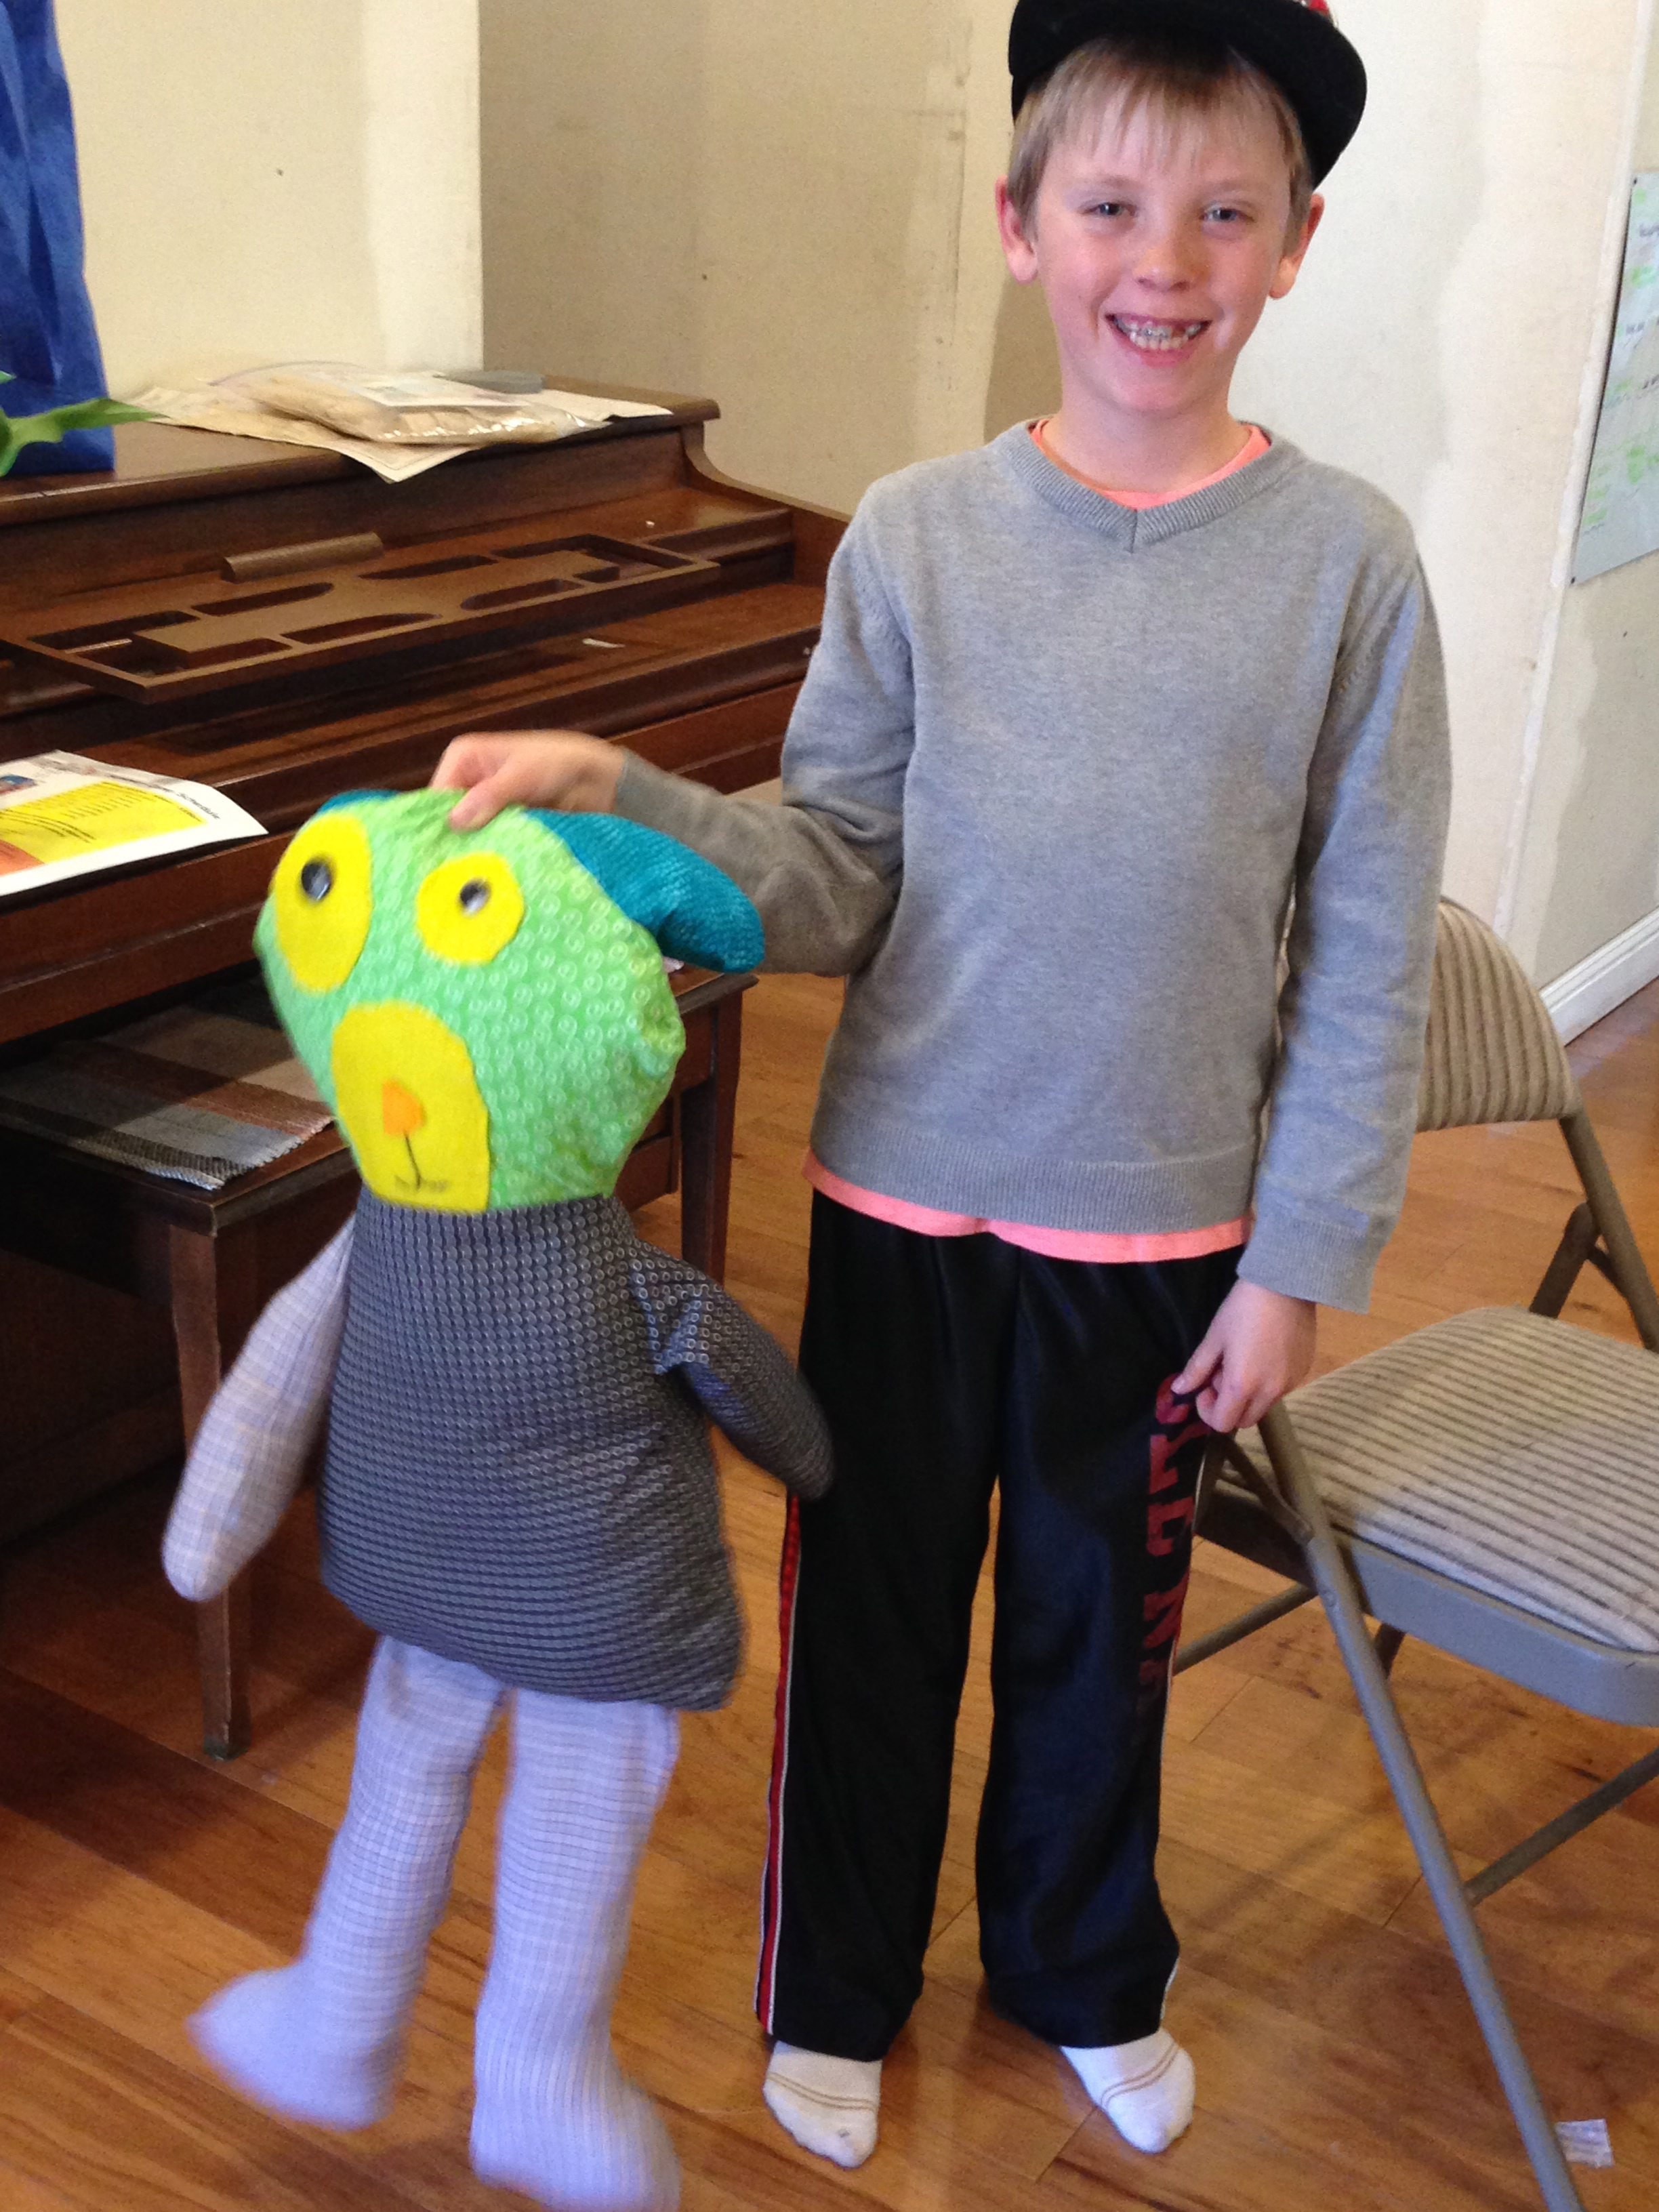 4th grader with his stuffed dog.